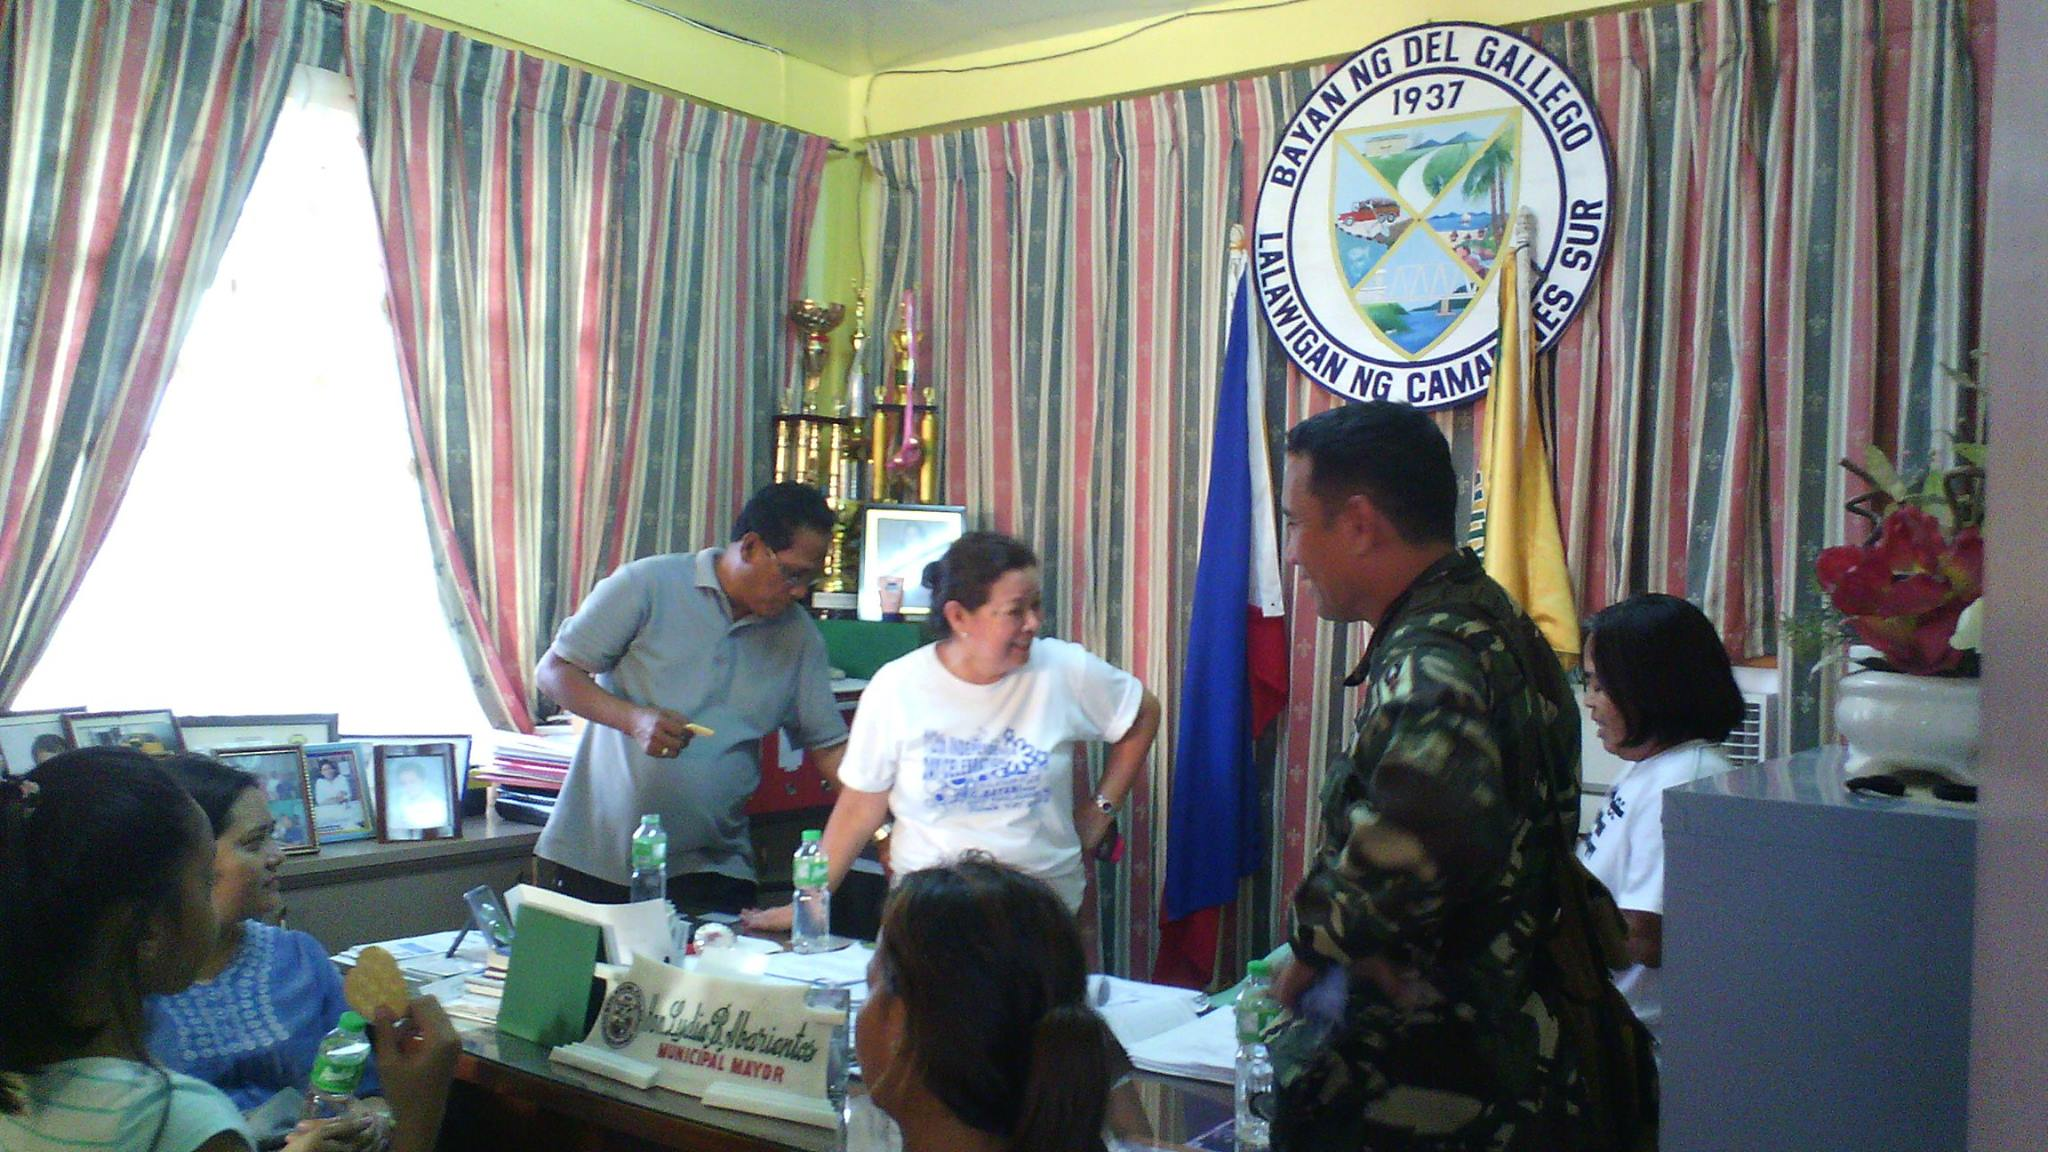 CRISIS AVERTED. Del Gallego Mayor Lydia Abarientos gets a positive update on the hostage-taking incident in her town on May 29, 2015. Photo by Reden Devilla